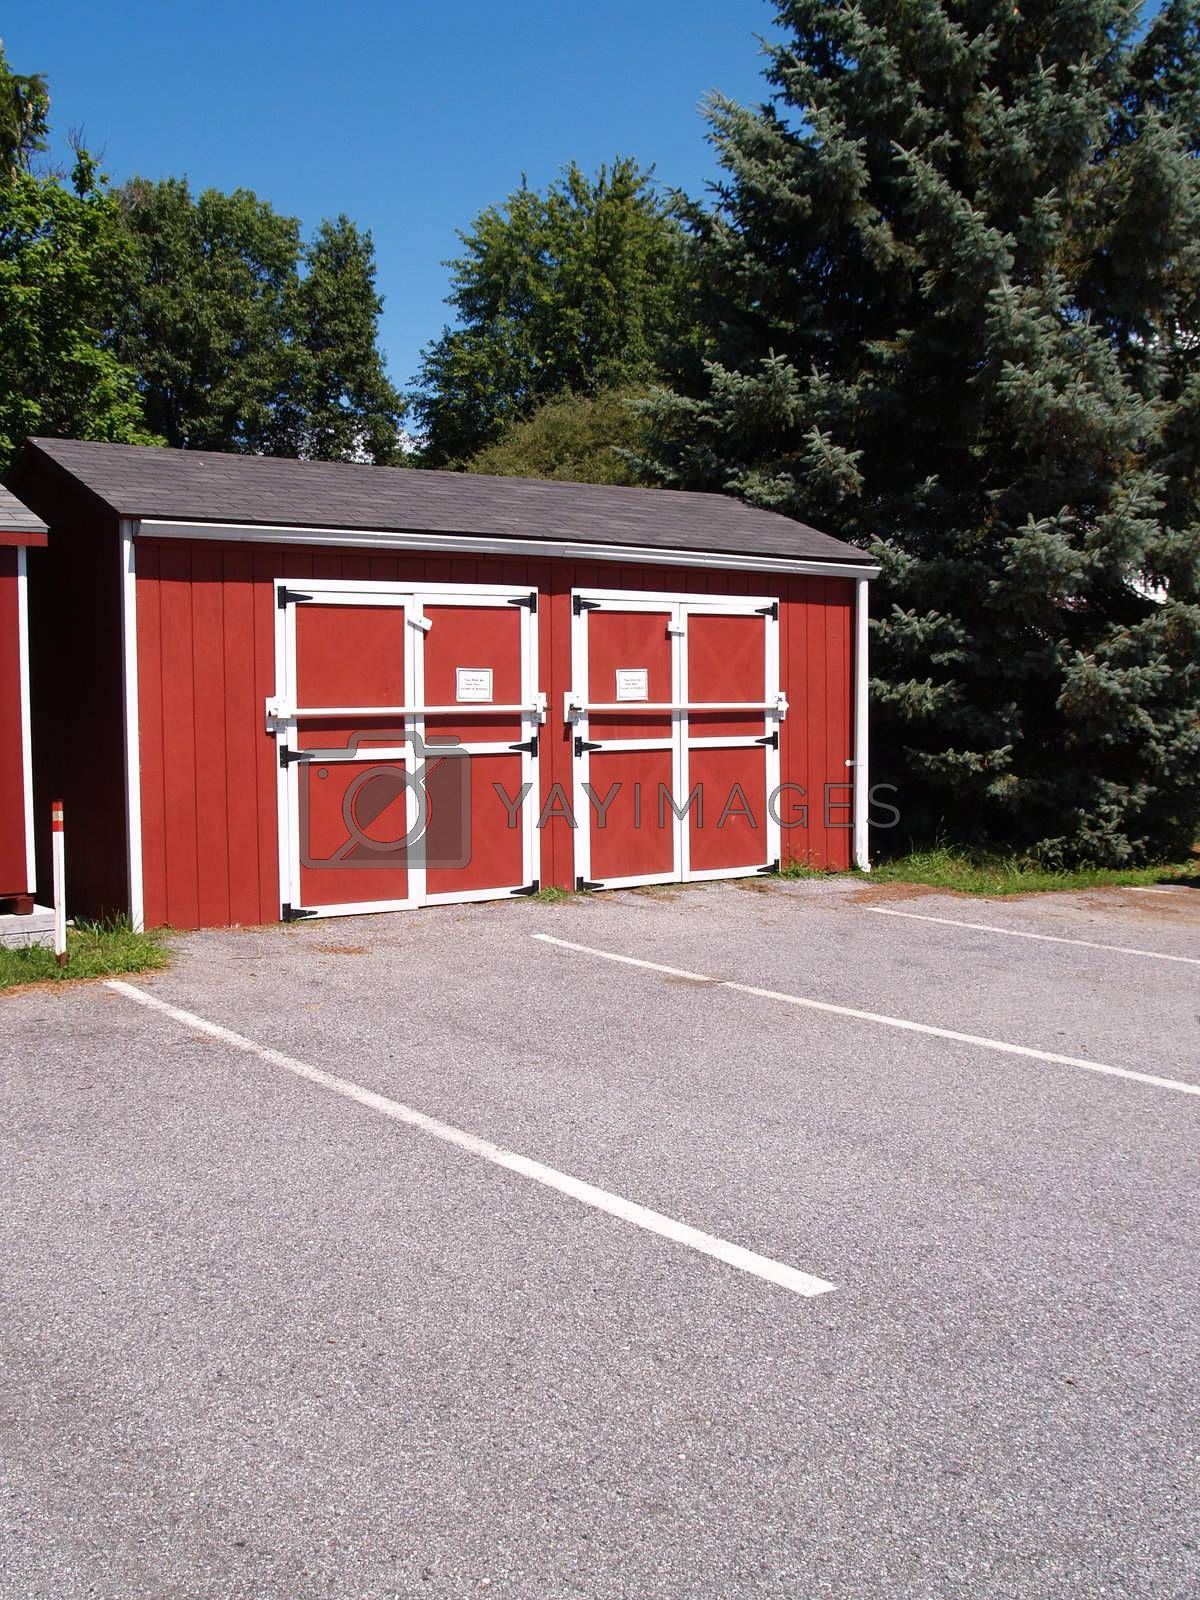 one red utility shed for storage near a parking lot